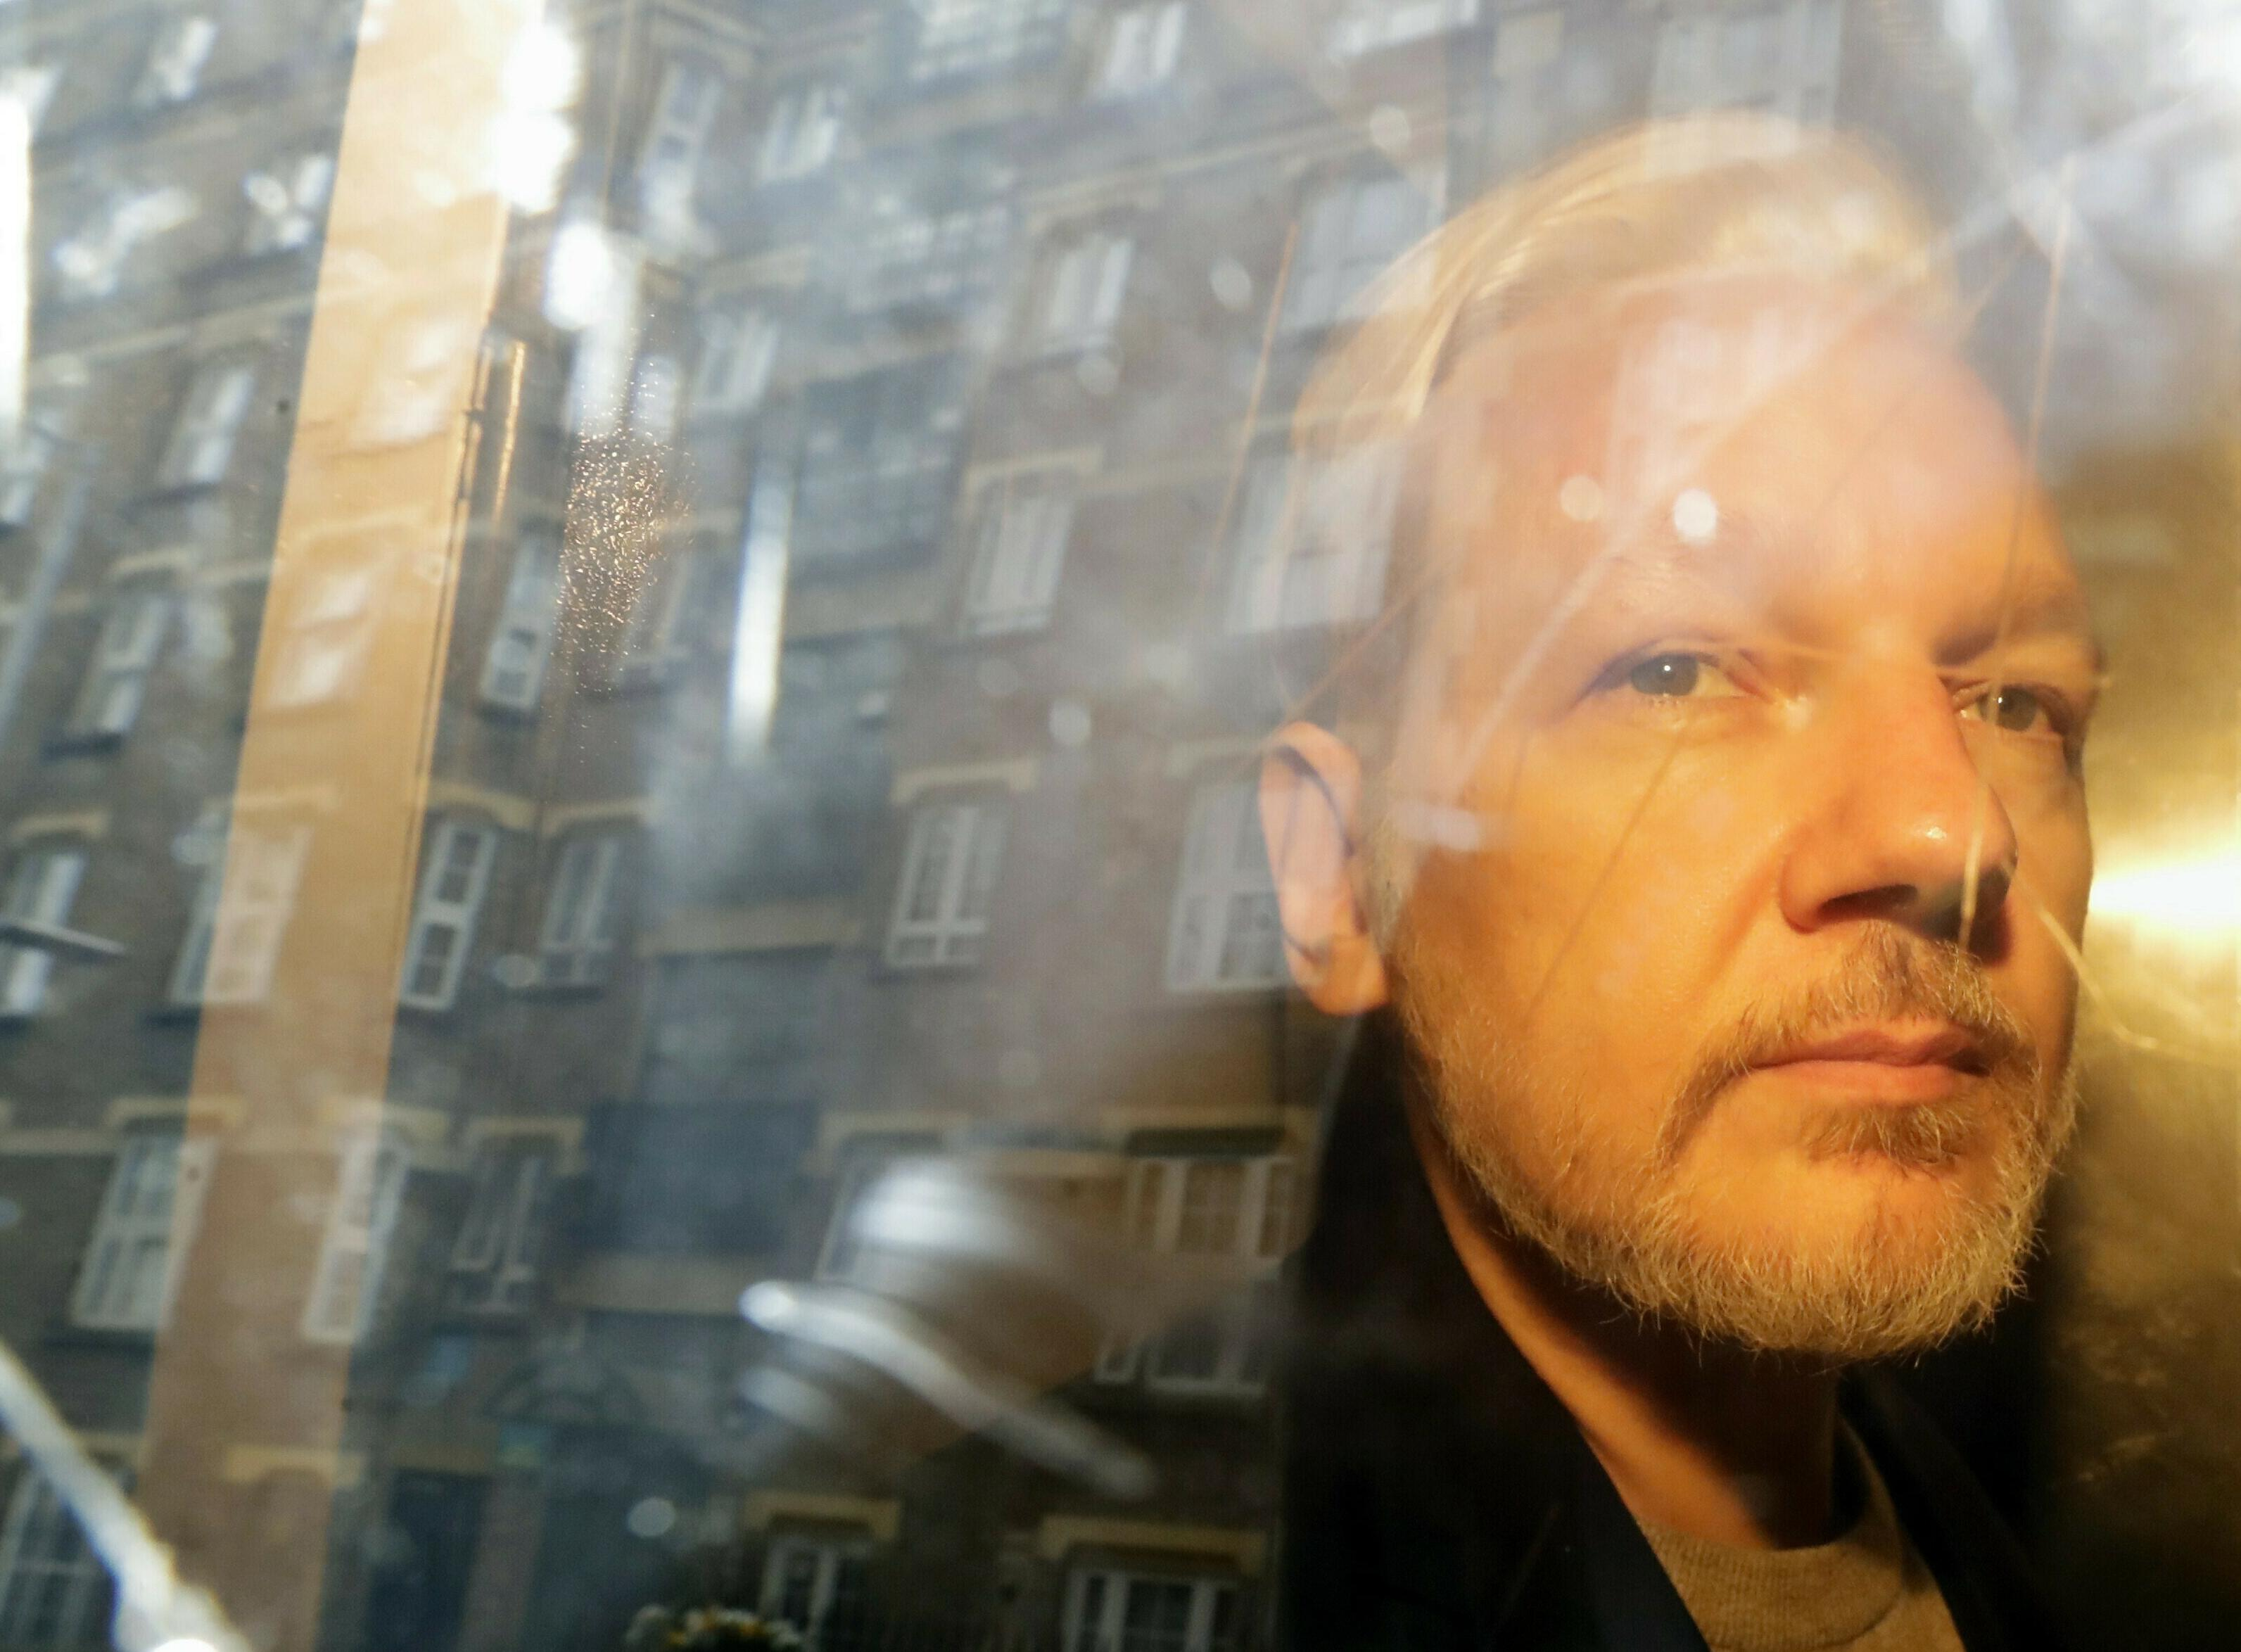 WikiLeaks: 'Unthinkable' that Boris Johnson will support extraditing Julian Assange to the U.S.